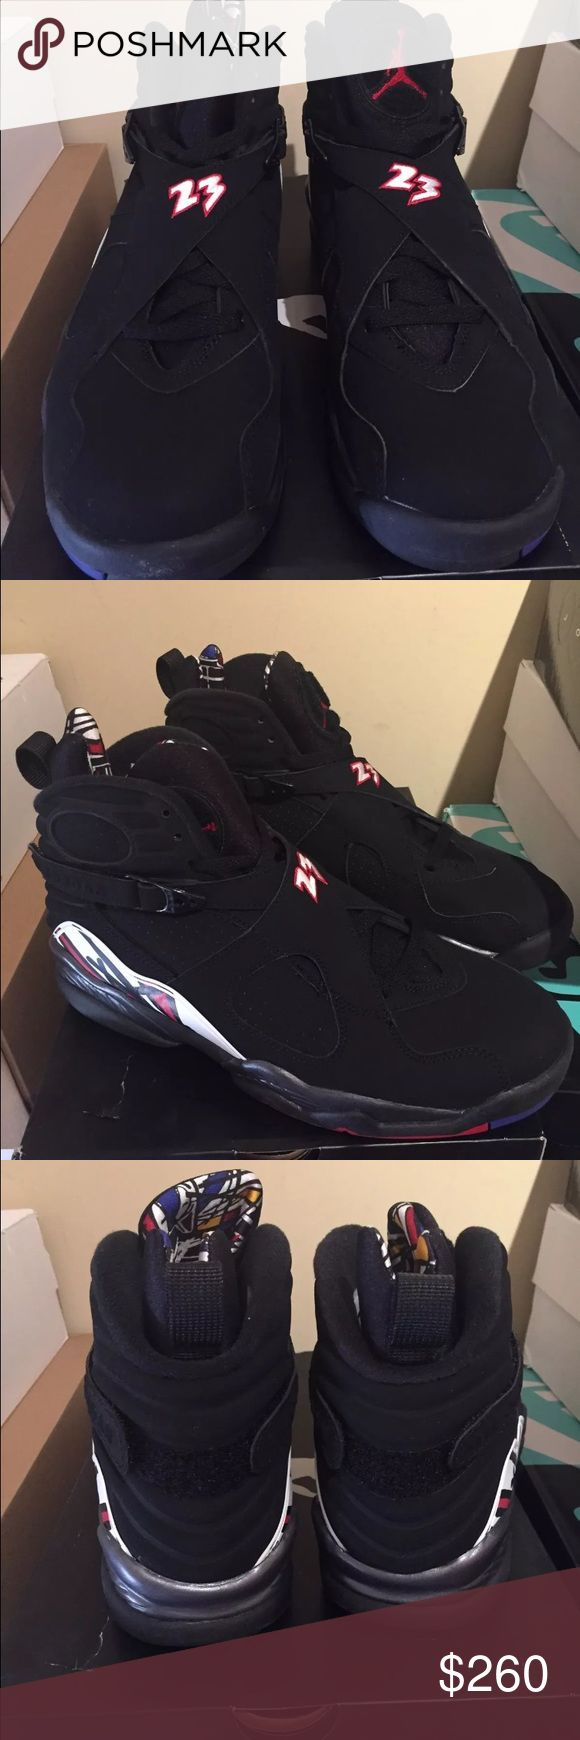 NIKE AIR JORDAN VIII 8 RETRO PLAYOFF  SIZE  9.5 NIKE AIR JORDAN VIII 8 RETRO PLAYOFF BLACK RED WHITE BRED SIZE  9.5 brand new DS never been worn 100% authentic Jordan Shoes Sneakers